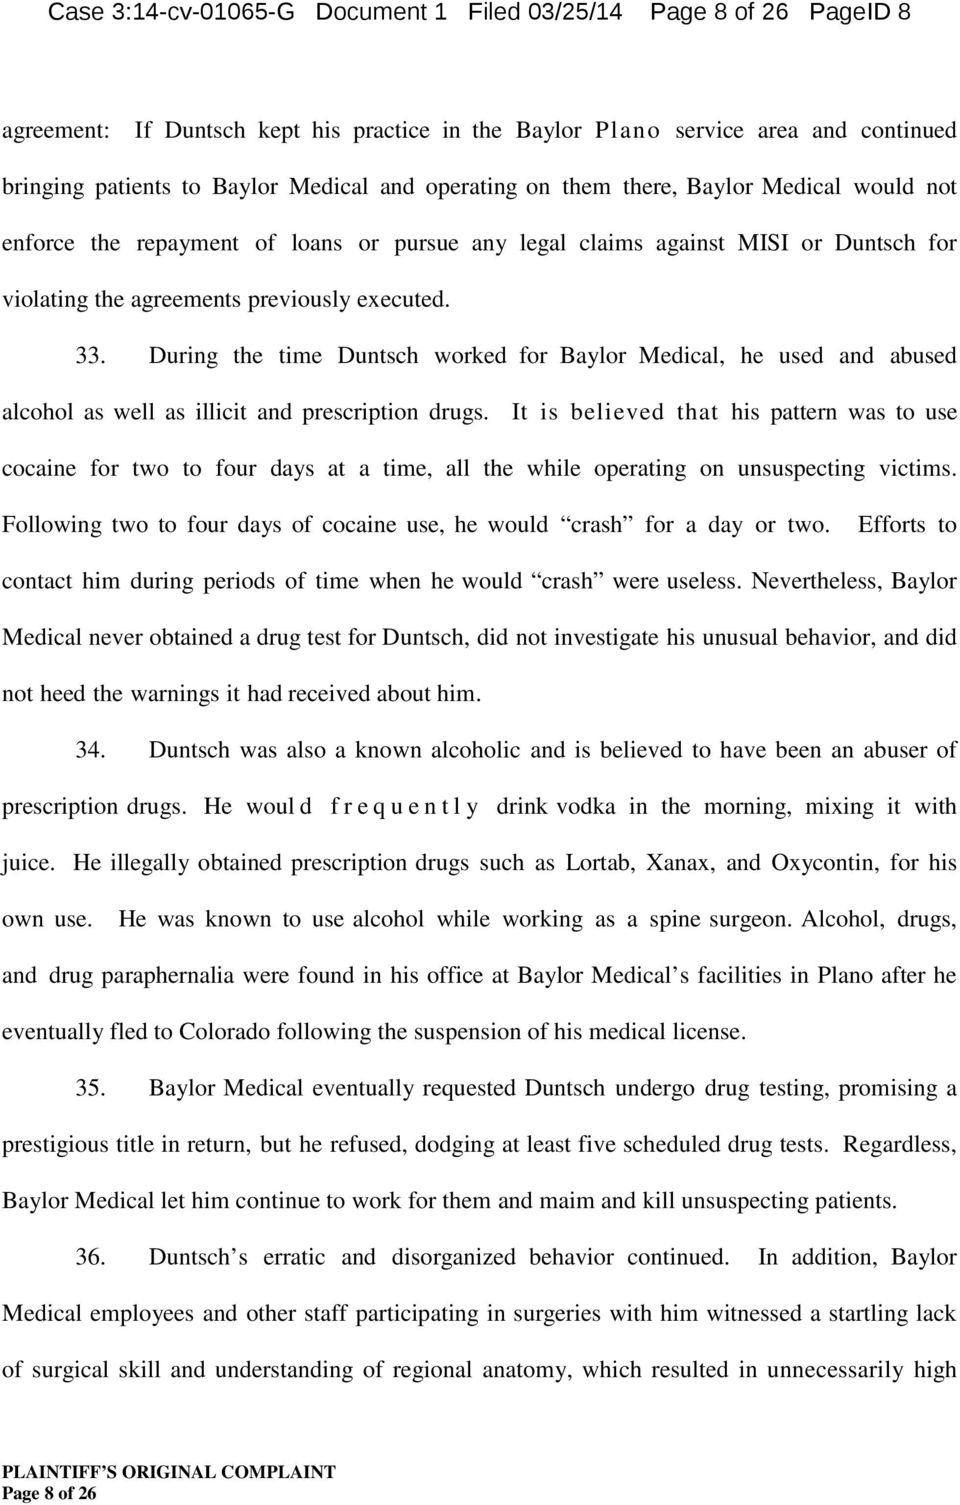 During the time Duntsch worked for Baylor Medical, he used and abused alcohol as well as illicit and prescription drugs.